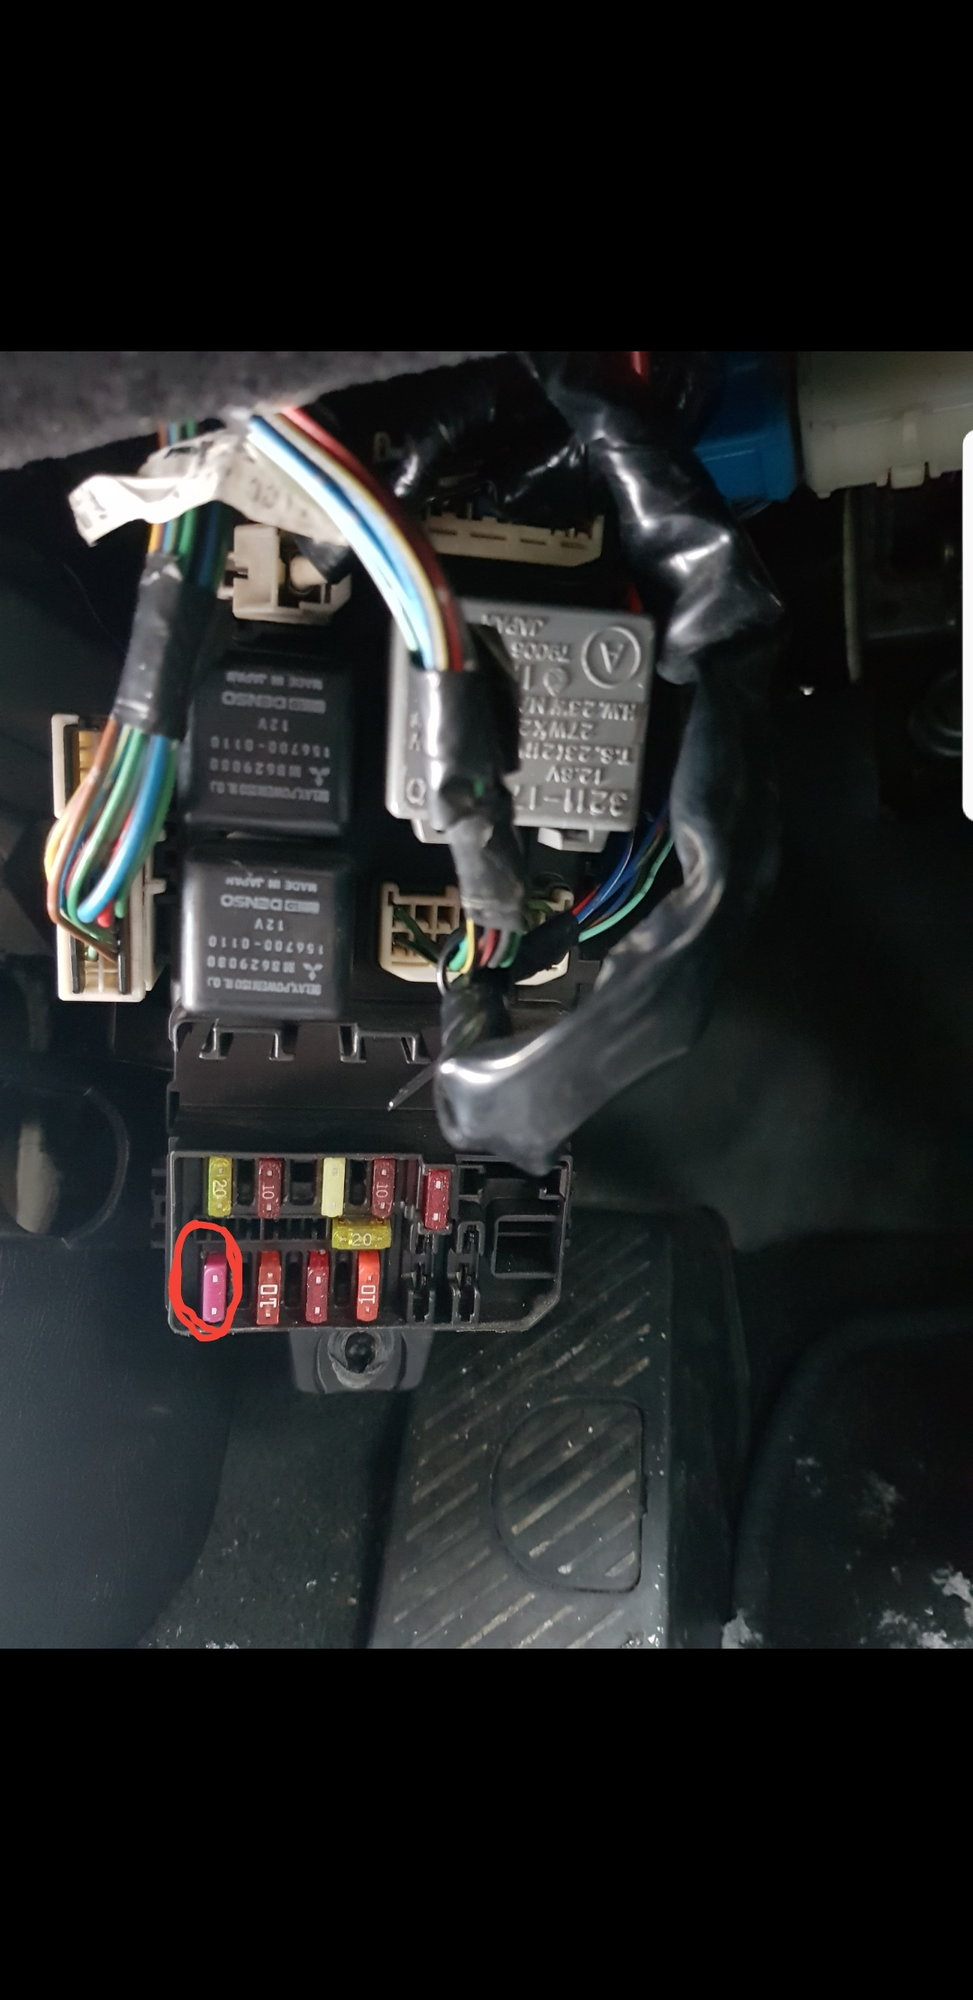 Popping Fuse And Car Wont Start Evolutionm Mitsubishi Lancer Aftermarket Auto Box It Is A 10amp In The Lower Left Corner Fusebox Under Dash Can Someone Please Tell Me What That Does